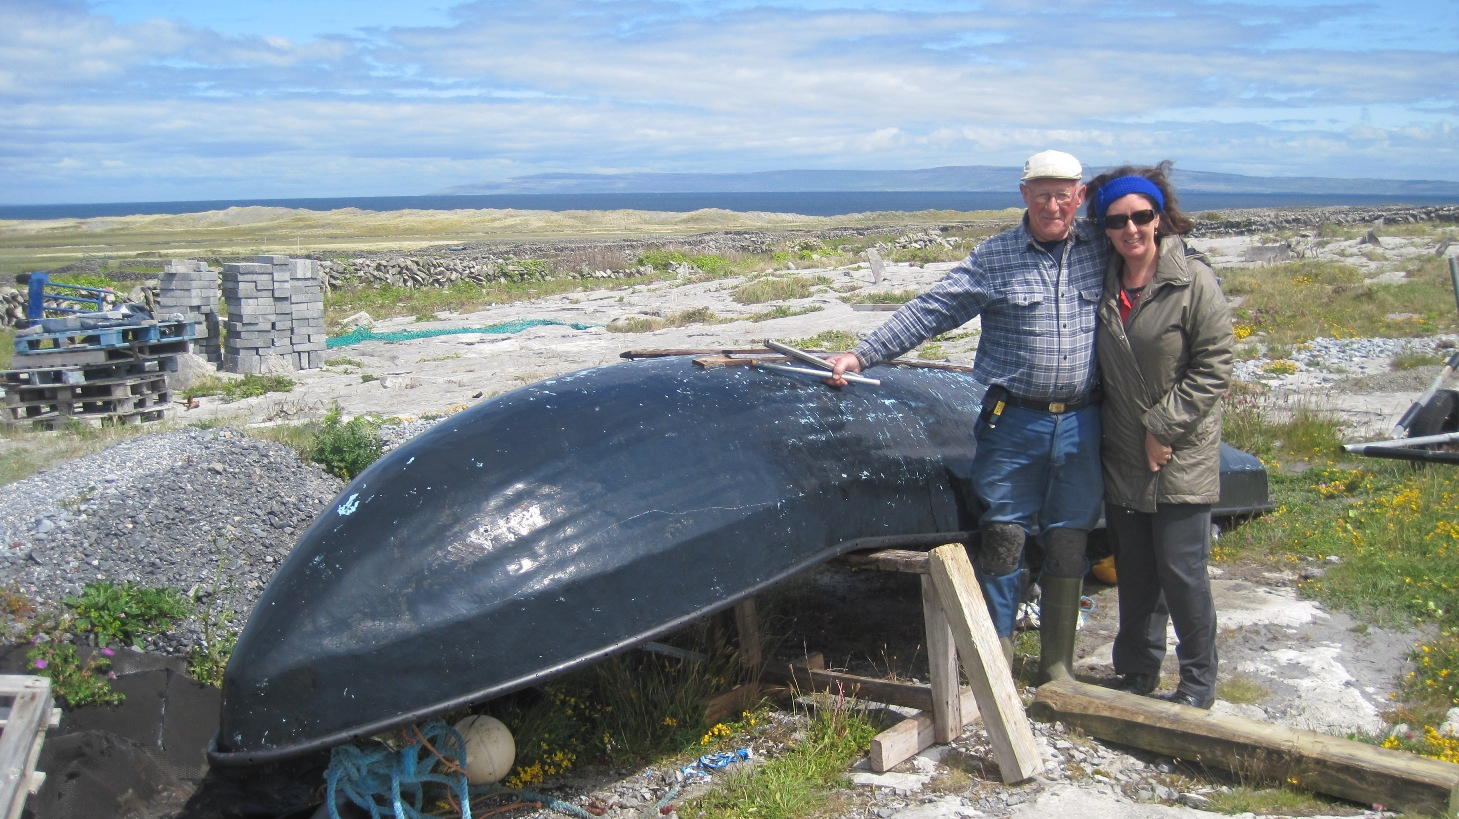 Paraic and the currach (1)